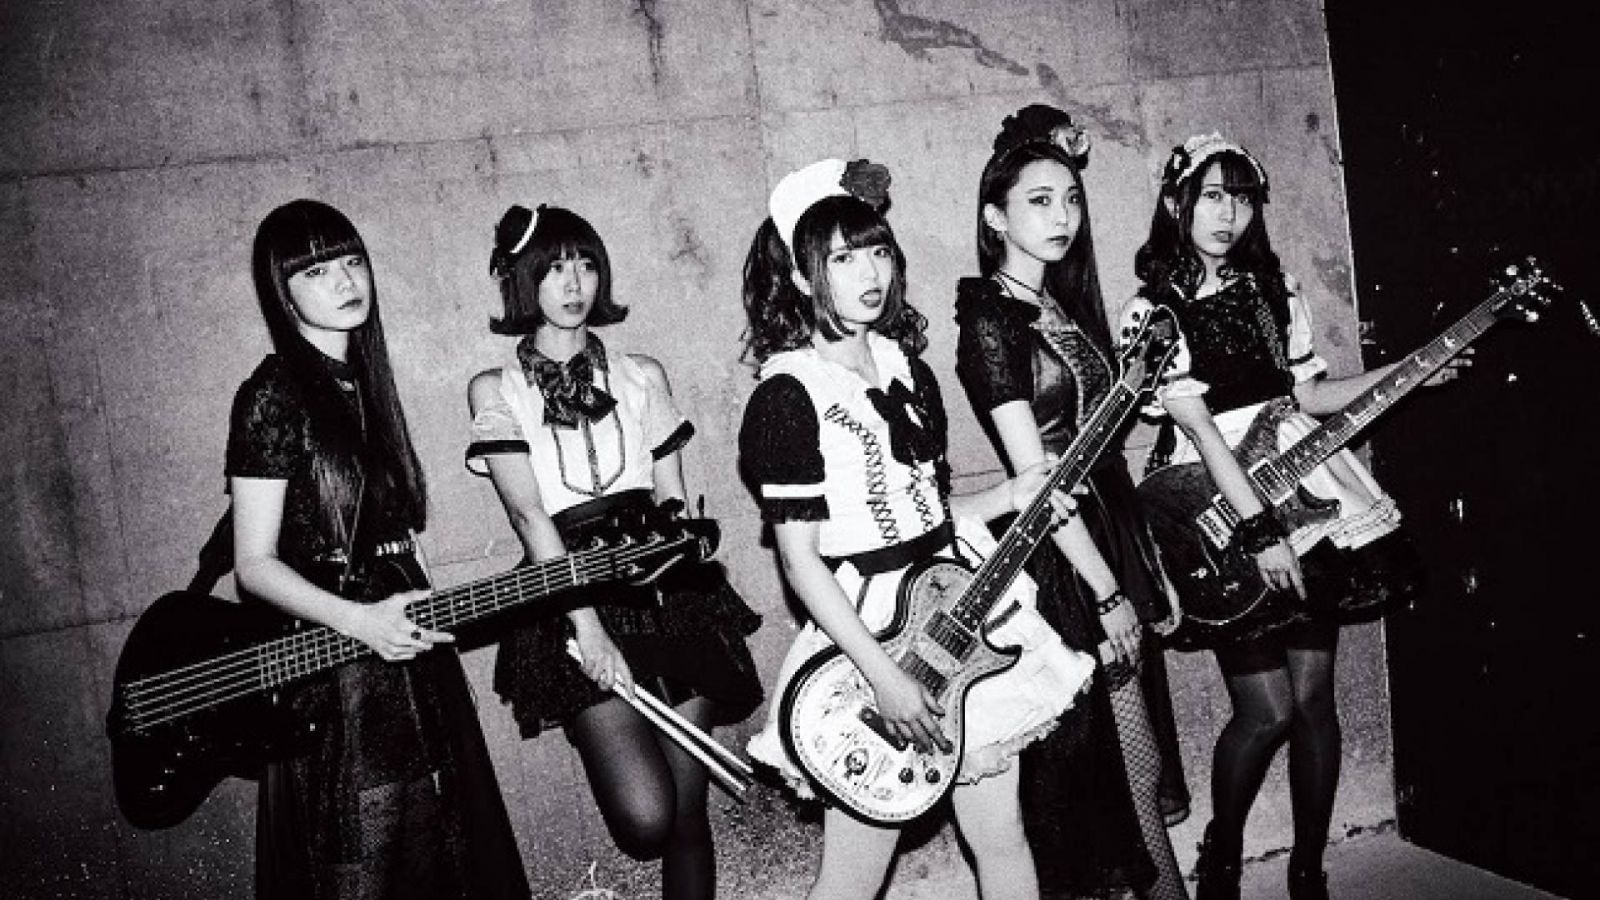 BAND-MAID - glory / Bubble © PLATINUM PASSPORT. All Rights Reserved.